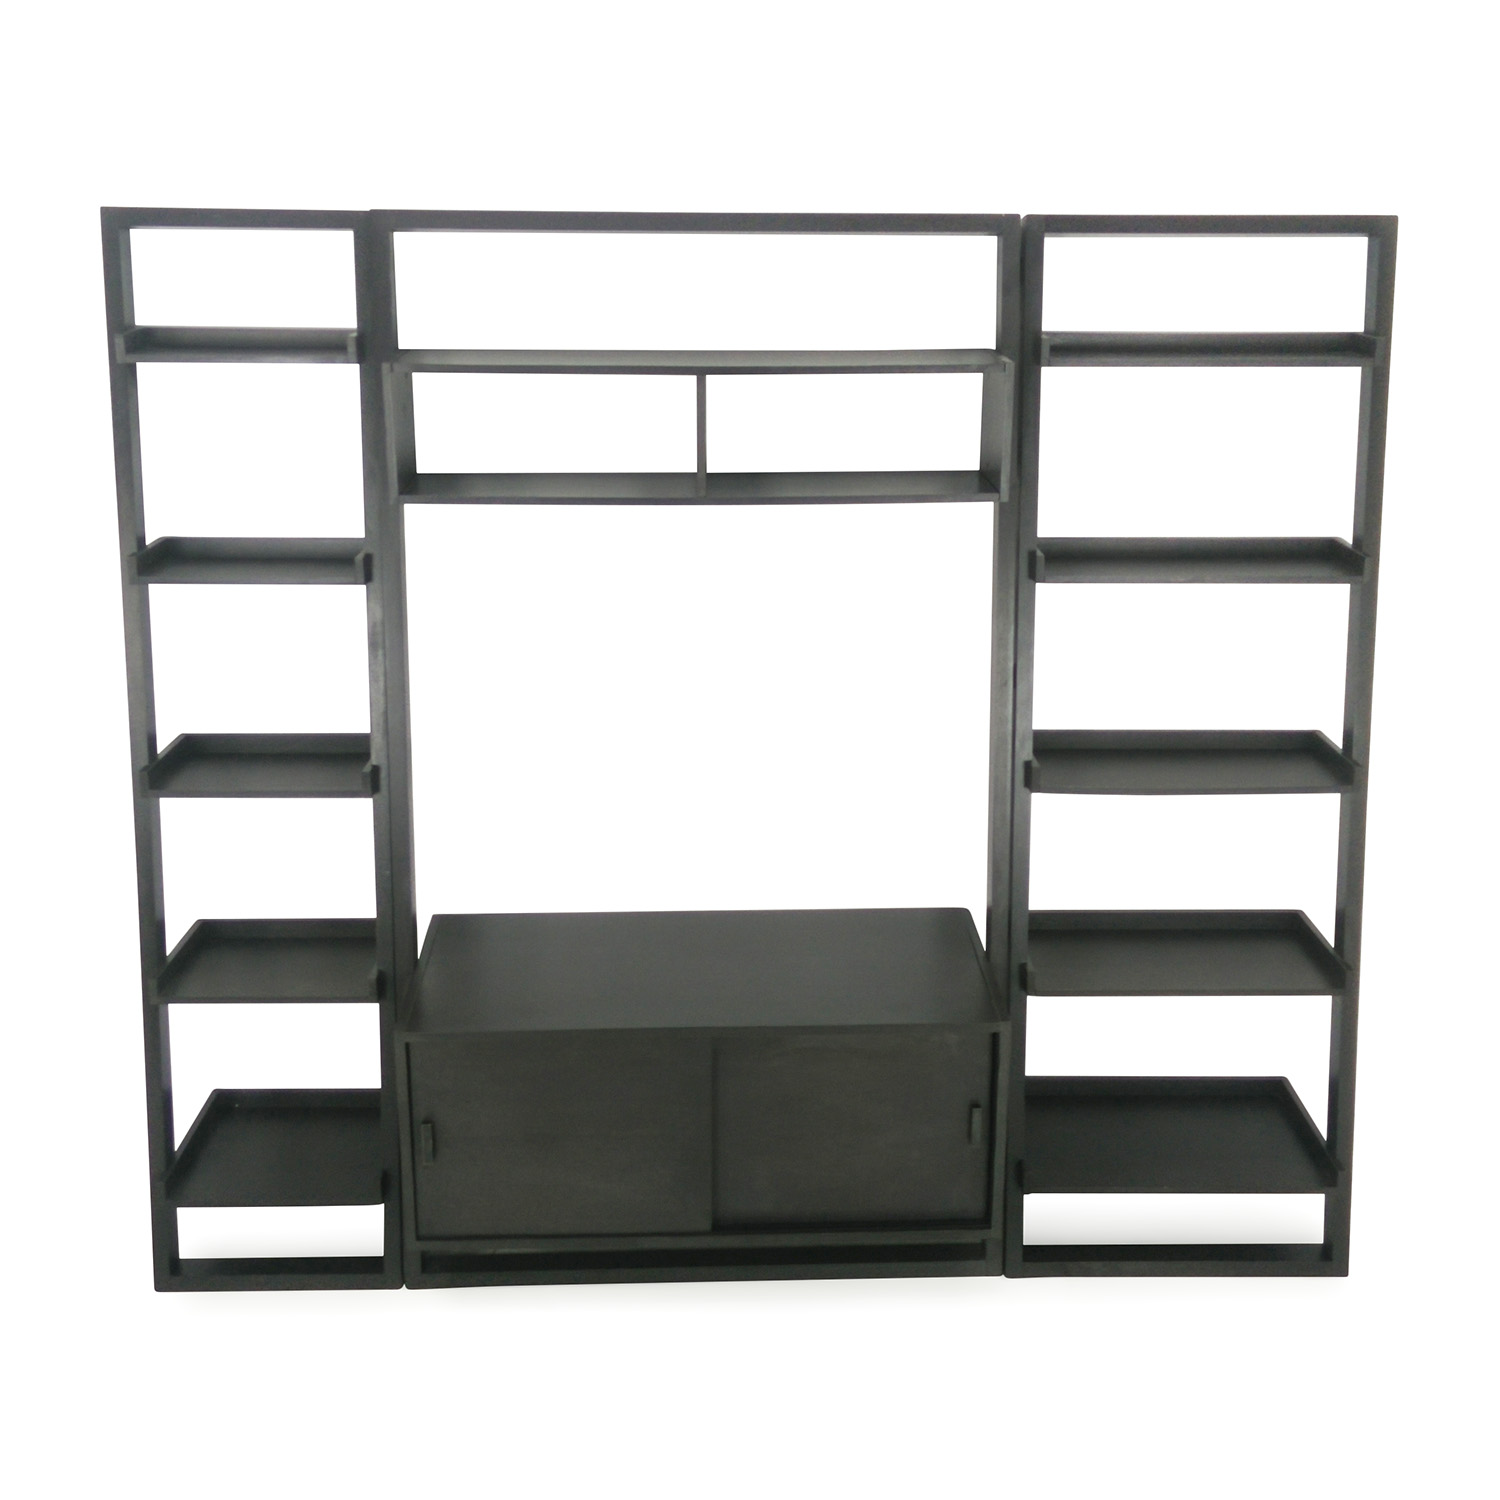 Crate and Barrel Crate and Barrel Leaning Media Stand coupon